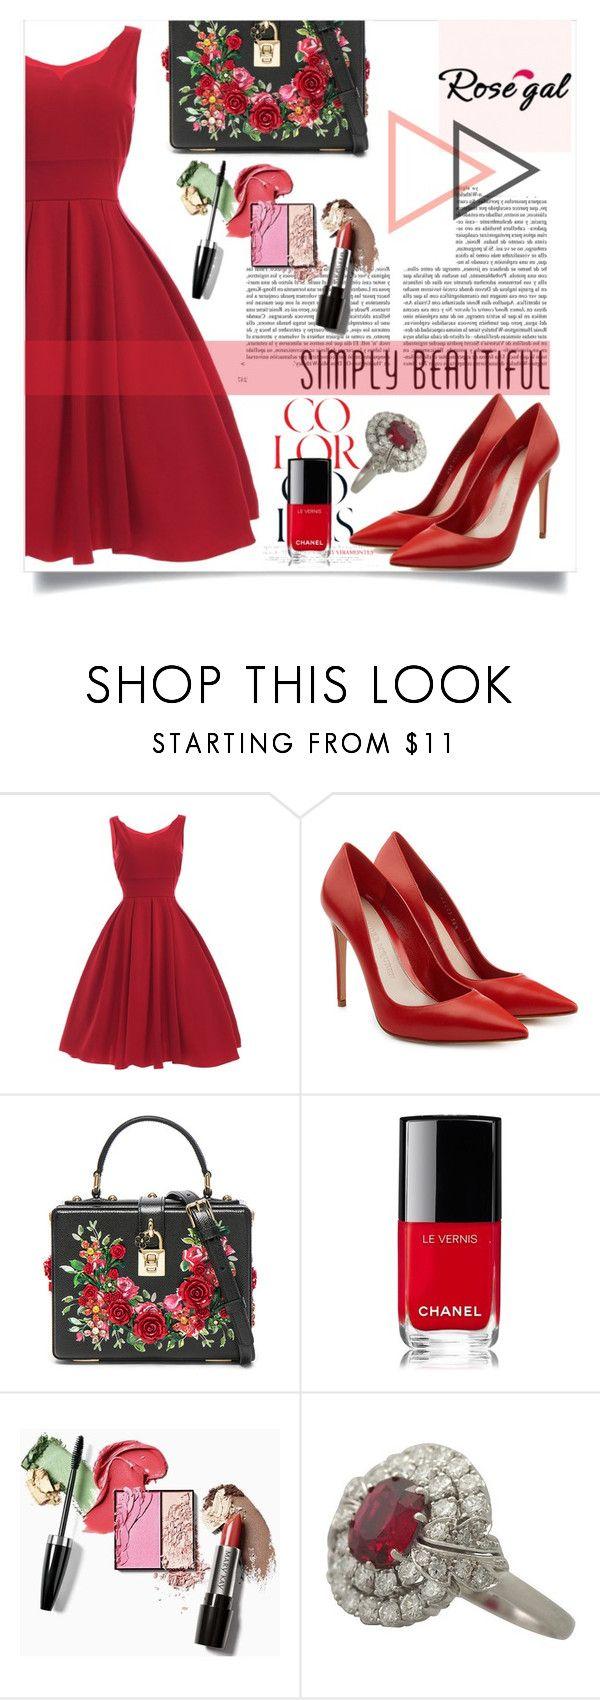 """""""Rosegal Contest"""" by kristina779 ❤ liked on Polyvore featuring Alexander McQueen, Dolce&Gabbana, Chanel and Whiteley"""